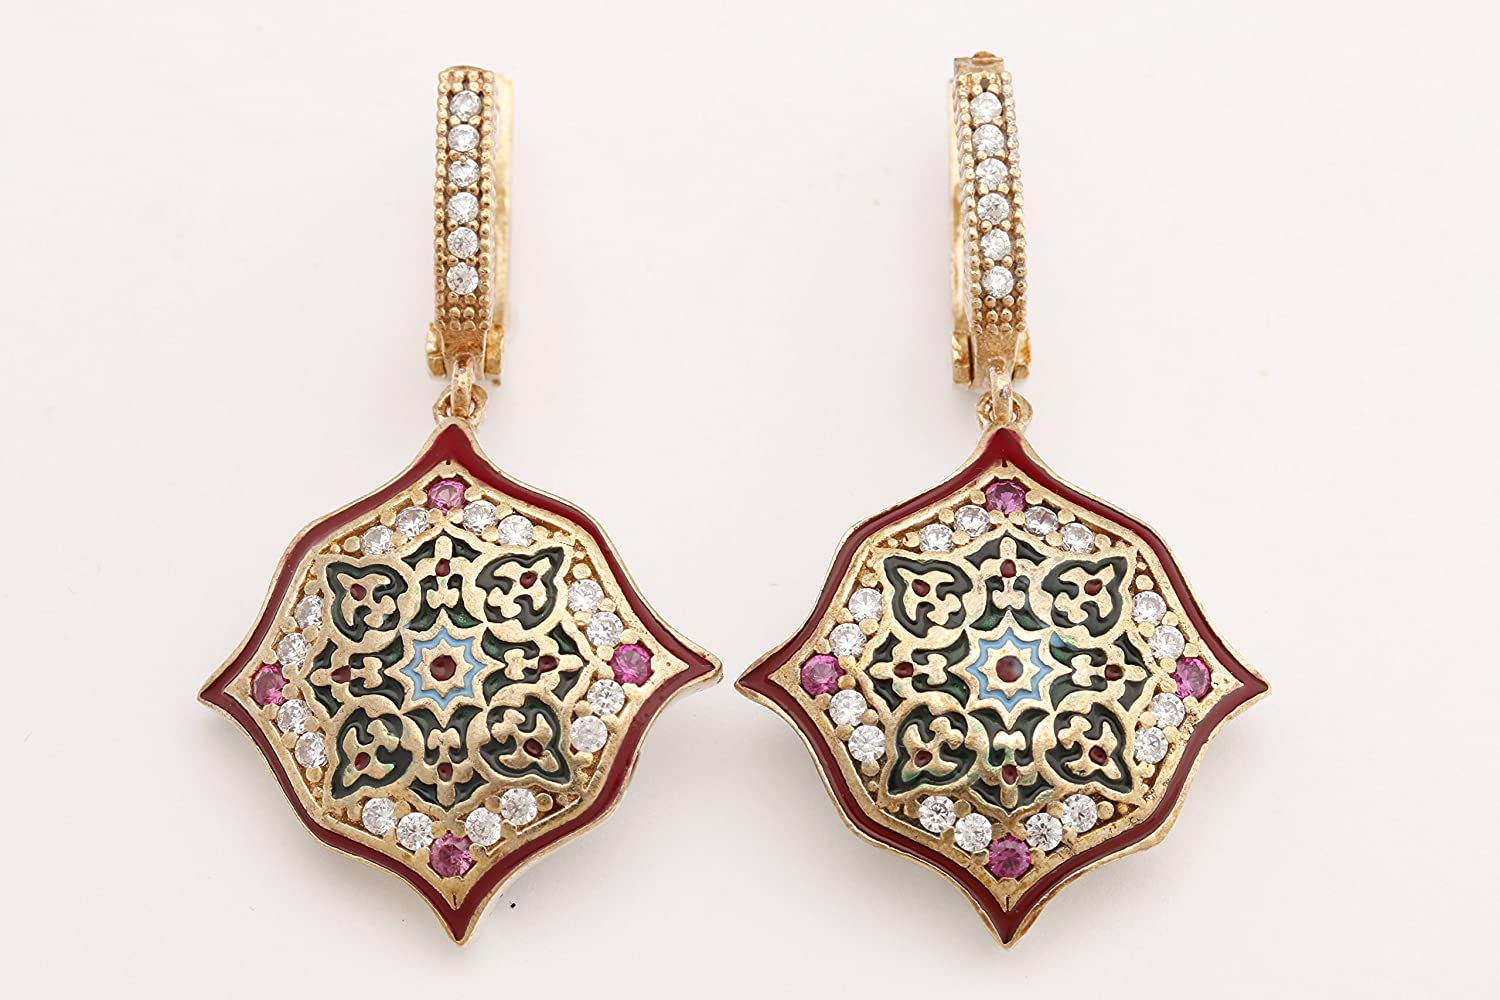 Motif Style Turkish Handmade All Authentic Jewelry Ro Finally popular brand Enamel Red Outlet sale feature